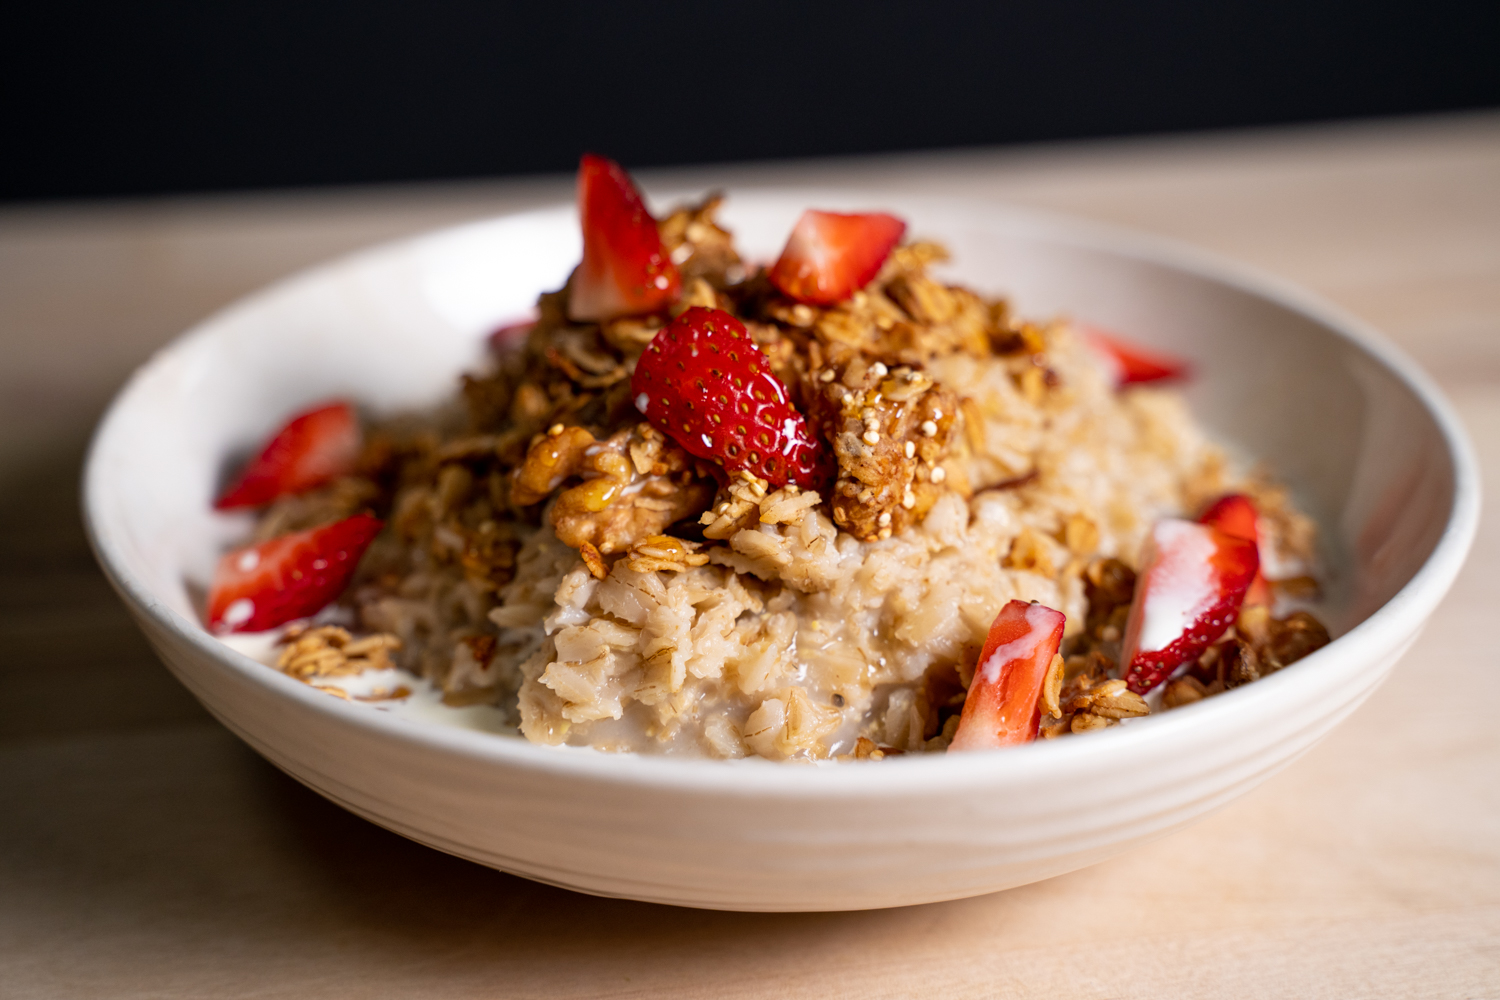 A bowl of oatmeal with honey dripping down over strawberries and granola